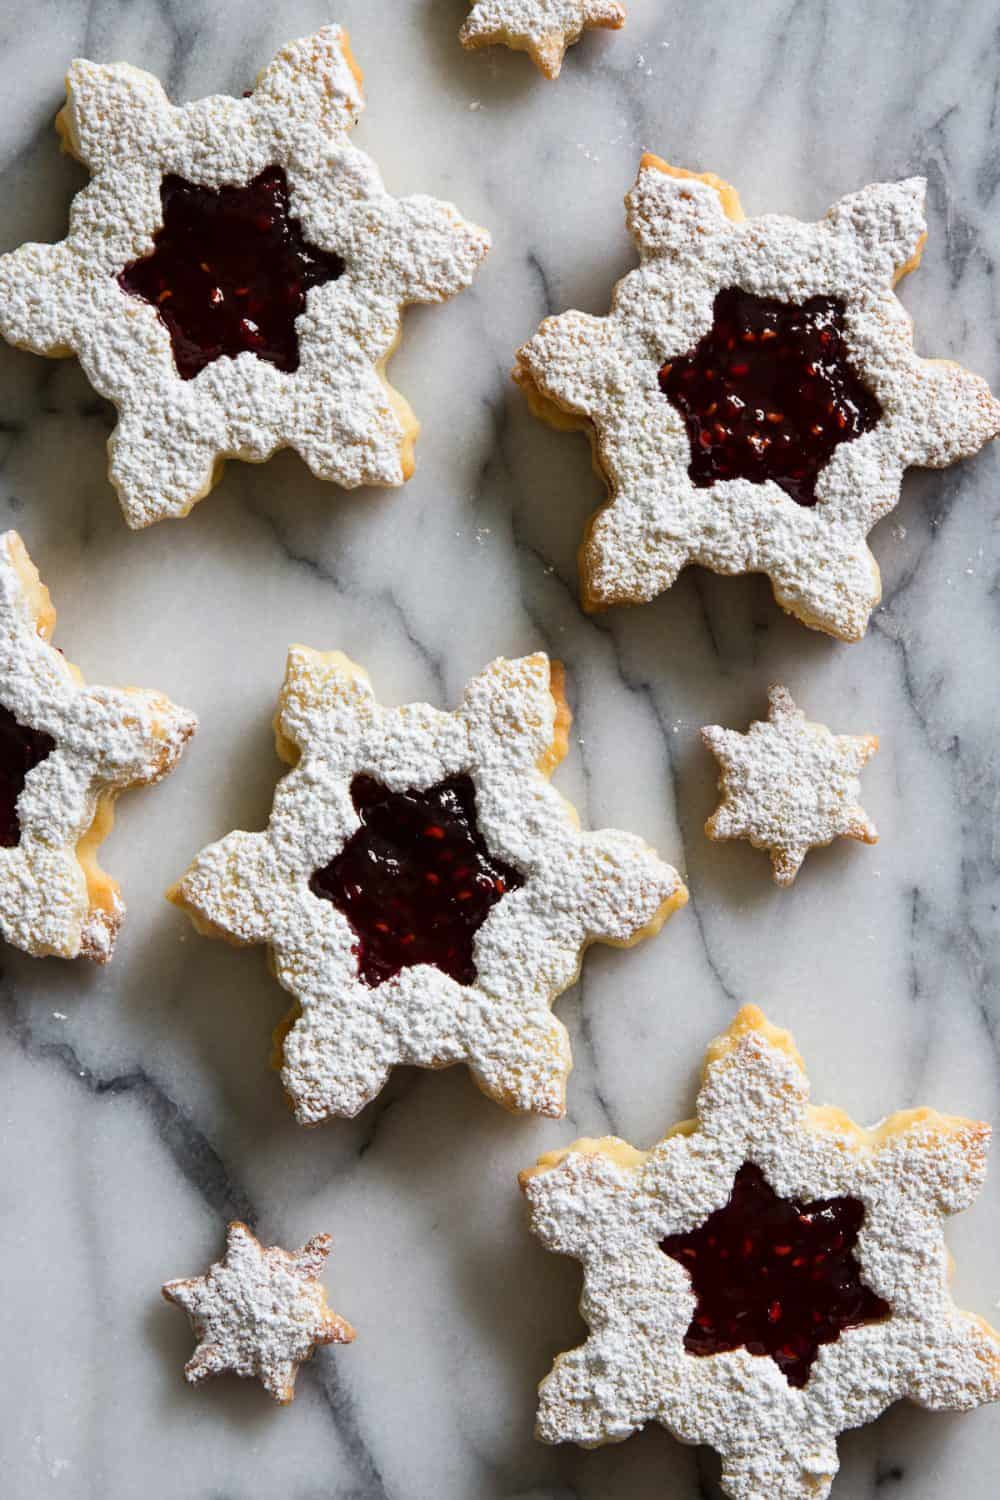 Close up of snowflake-shaped linzer cookies with raspberry jam and topped with powdered sugar on a white marbled background.